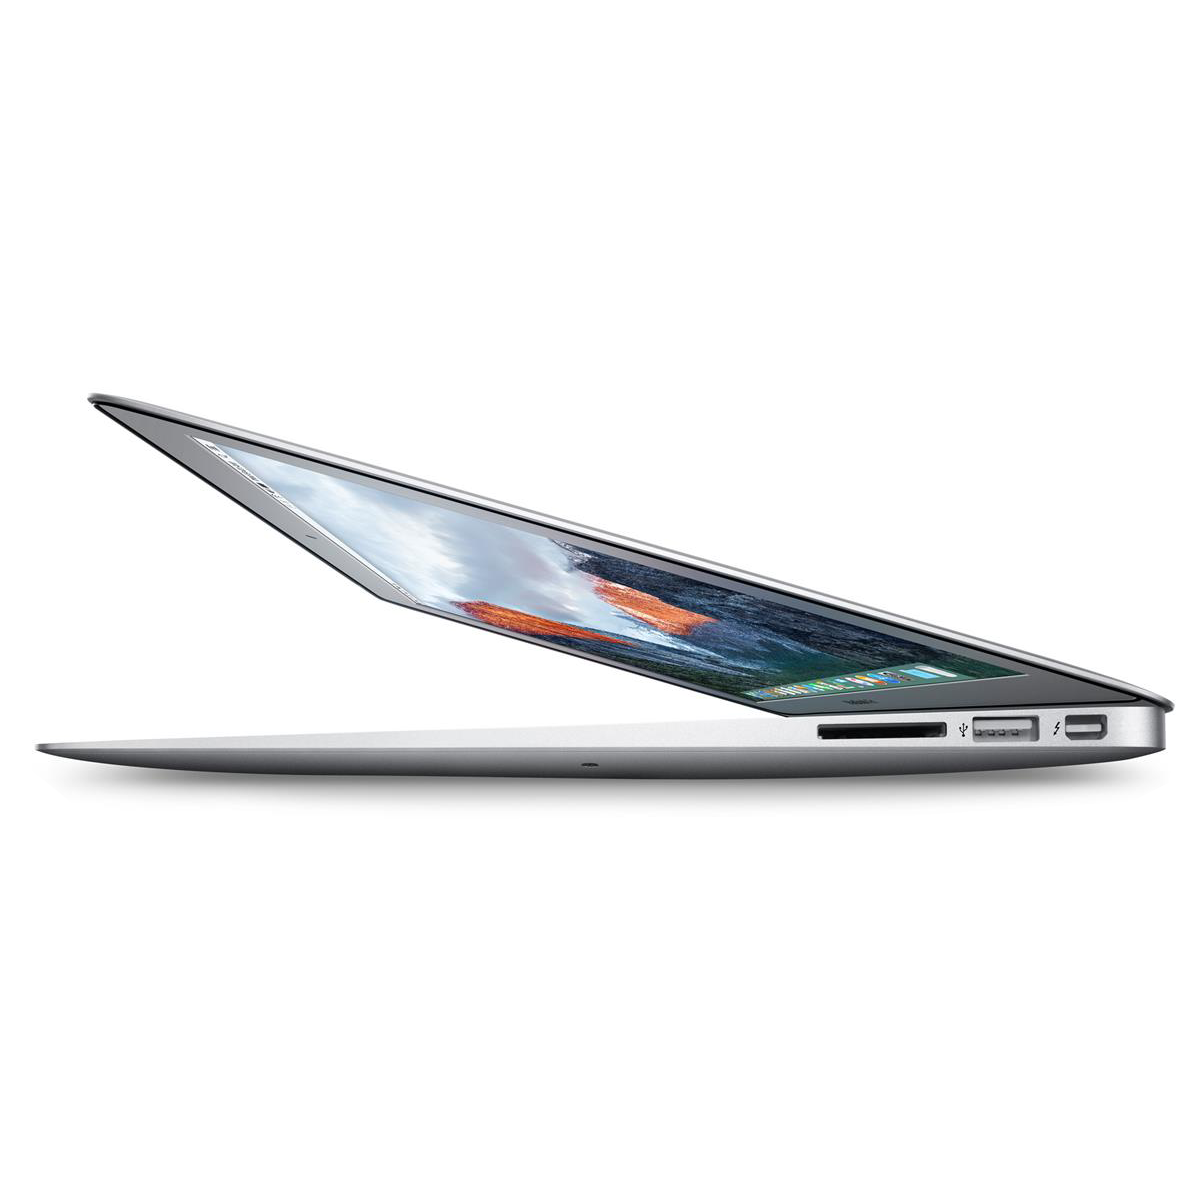 "Ноутбук Apple MacBook Air 13"" 128 SSD Silver (MMGF2), картинка 2"